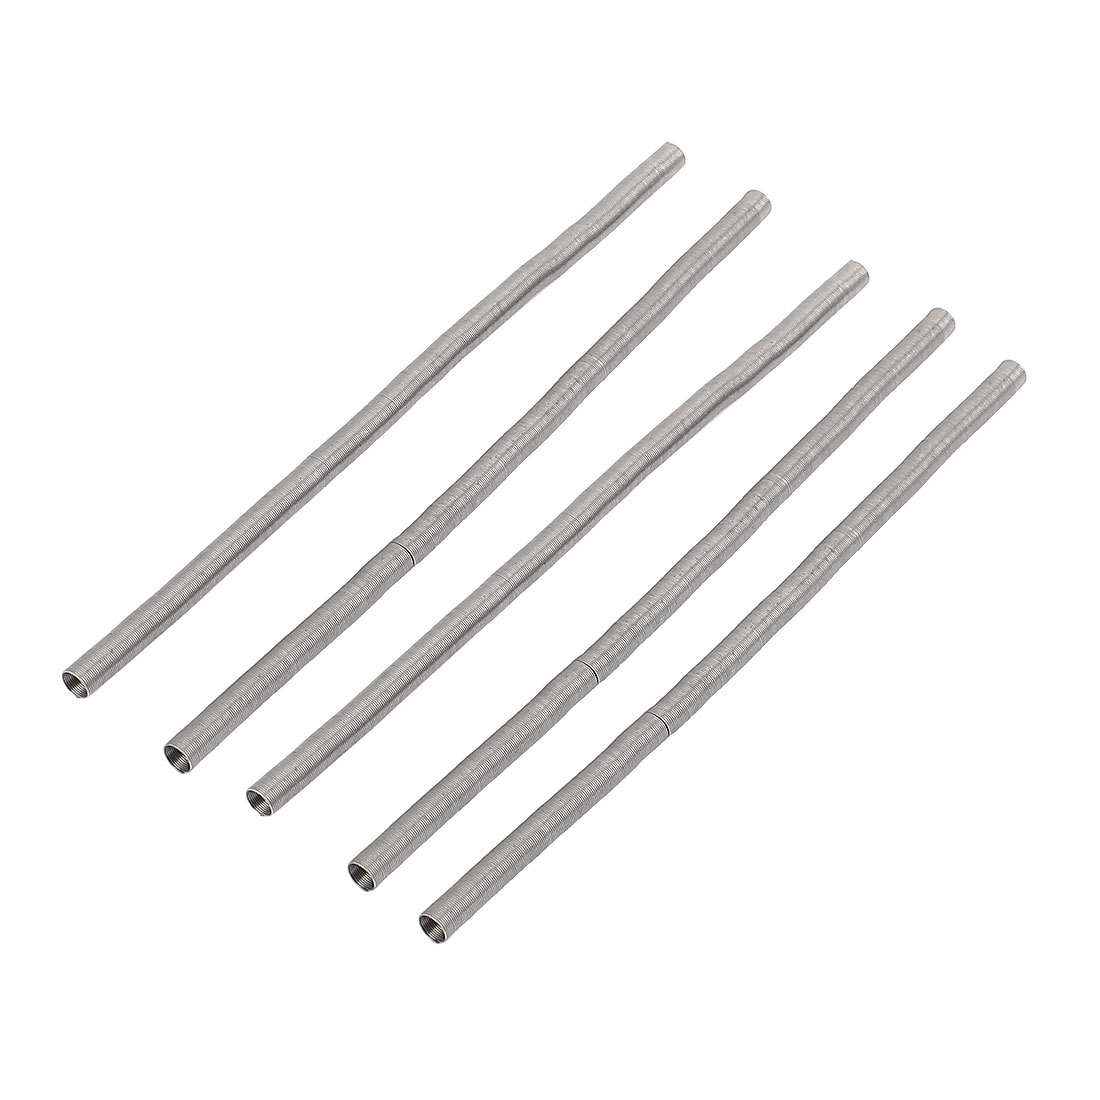 AC220V 300W Heating Element Coil Heater Wire Silver Gray 120mm x 5mm 5Pcs